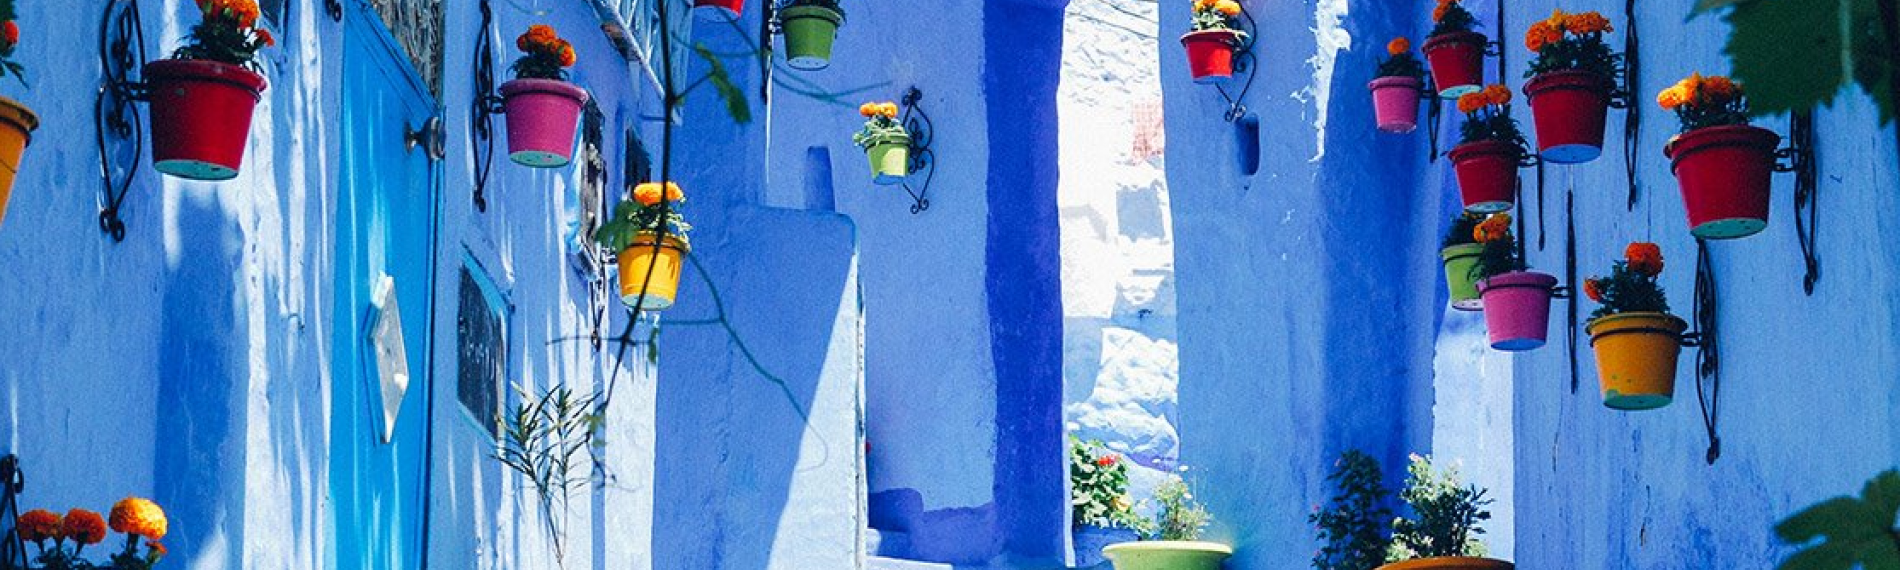 Guided tour of Chefchaouen